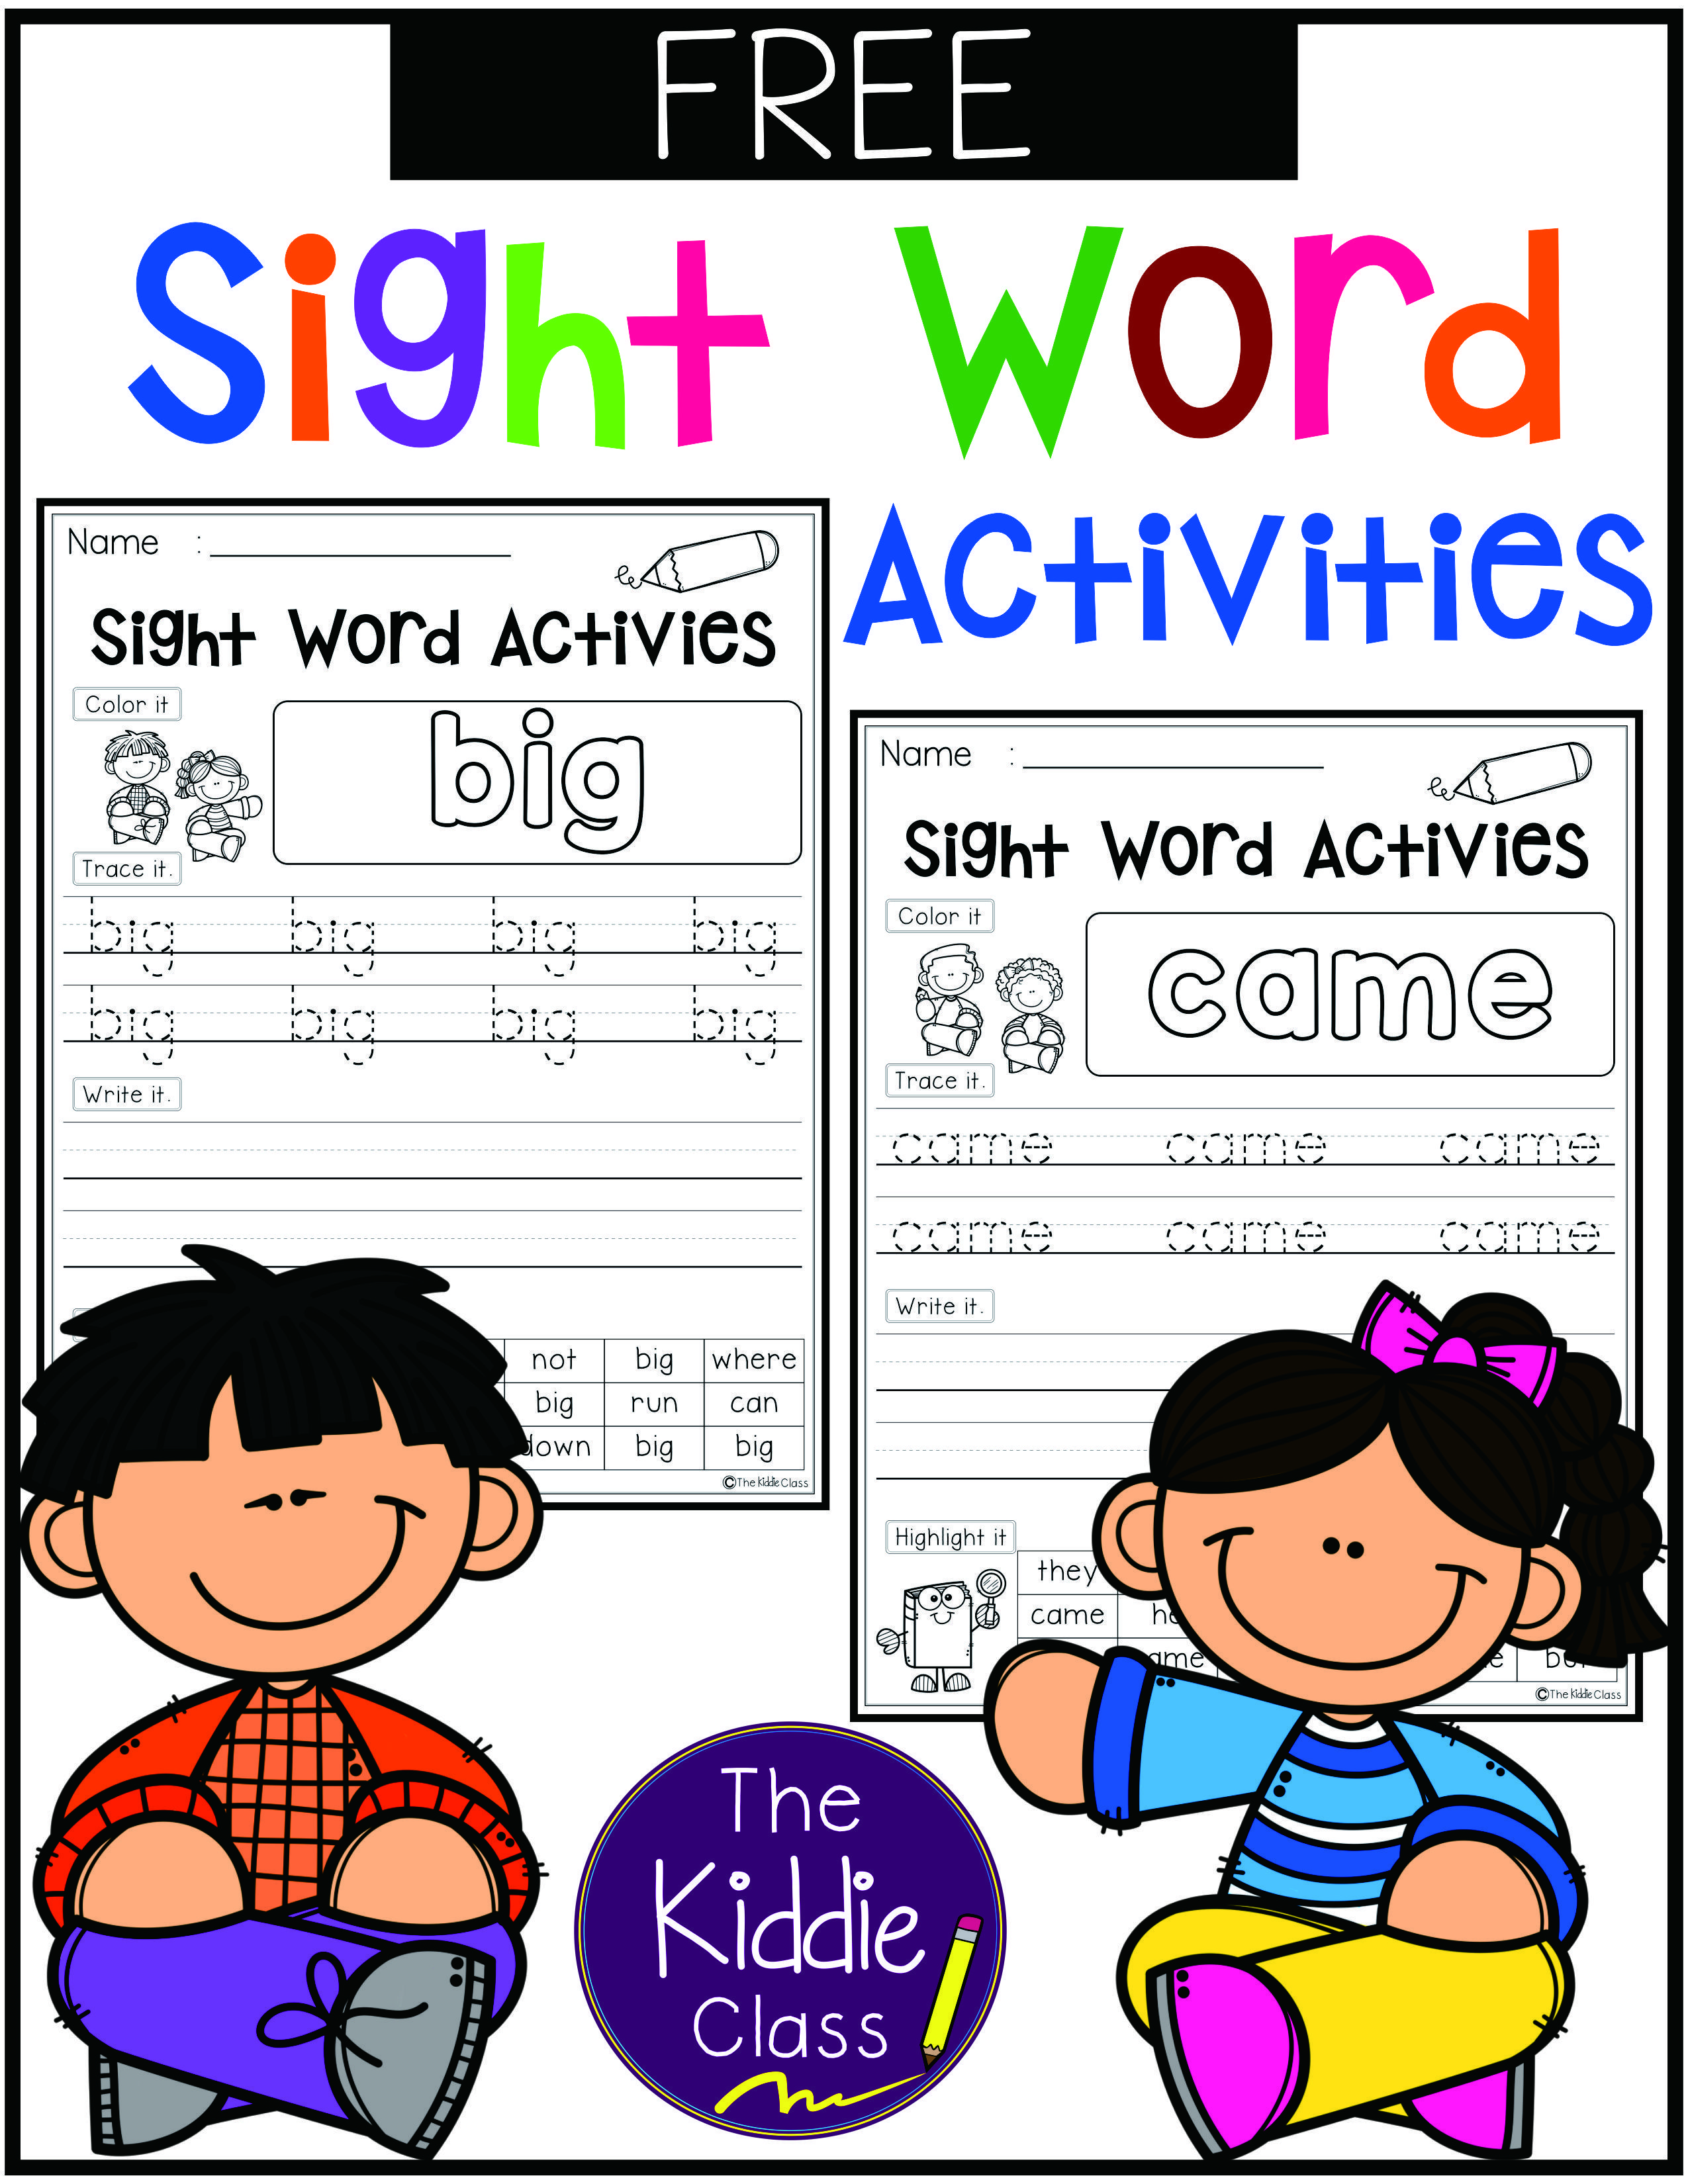 Free Sight Word Activities There Are 10 Pages Of Sight